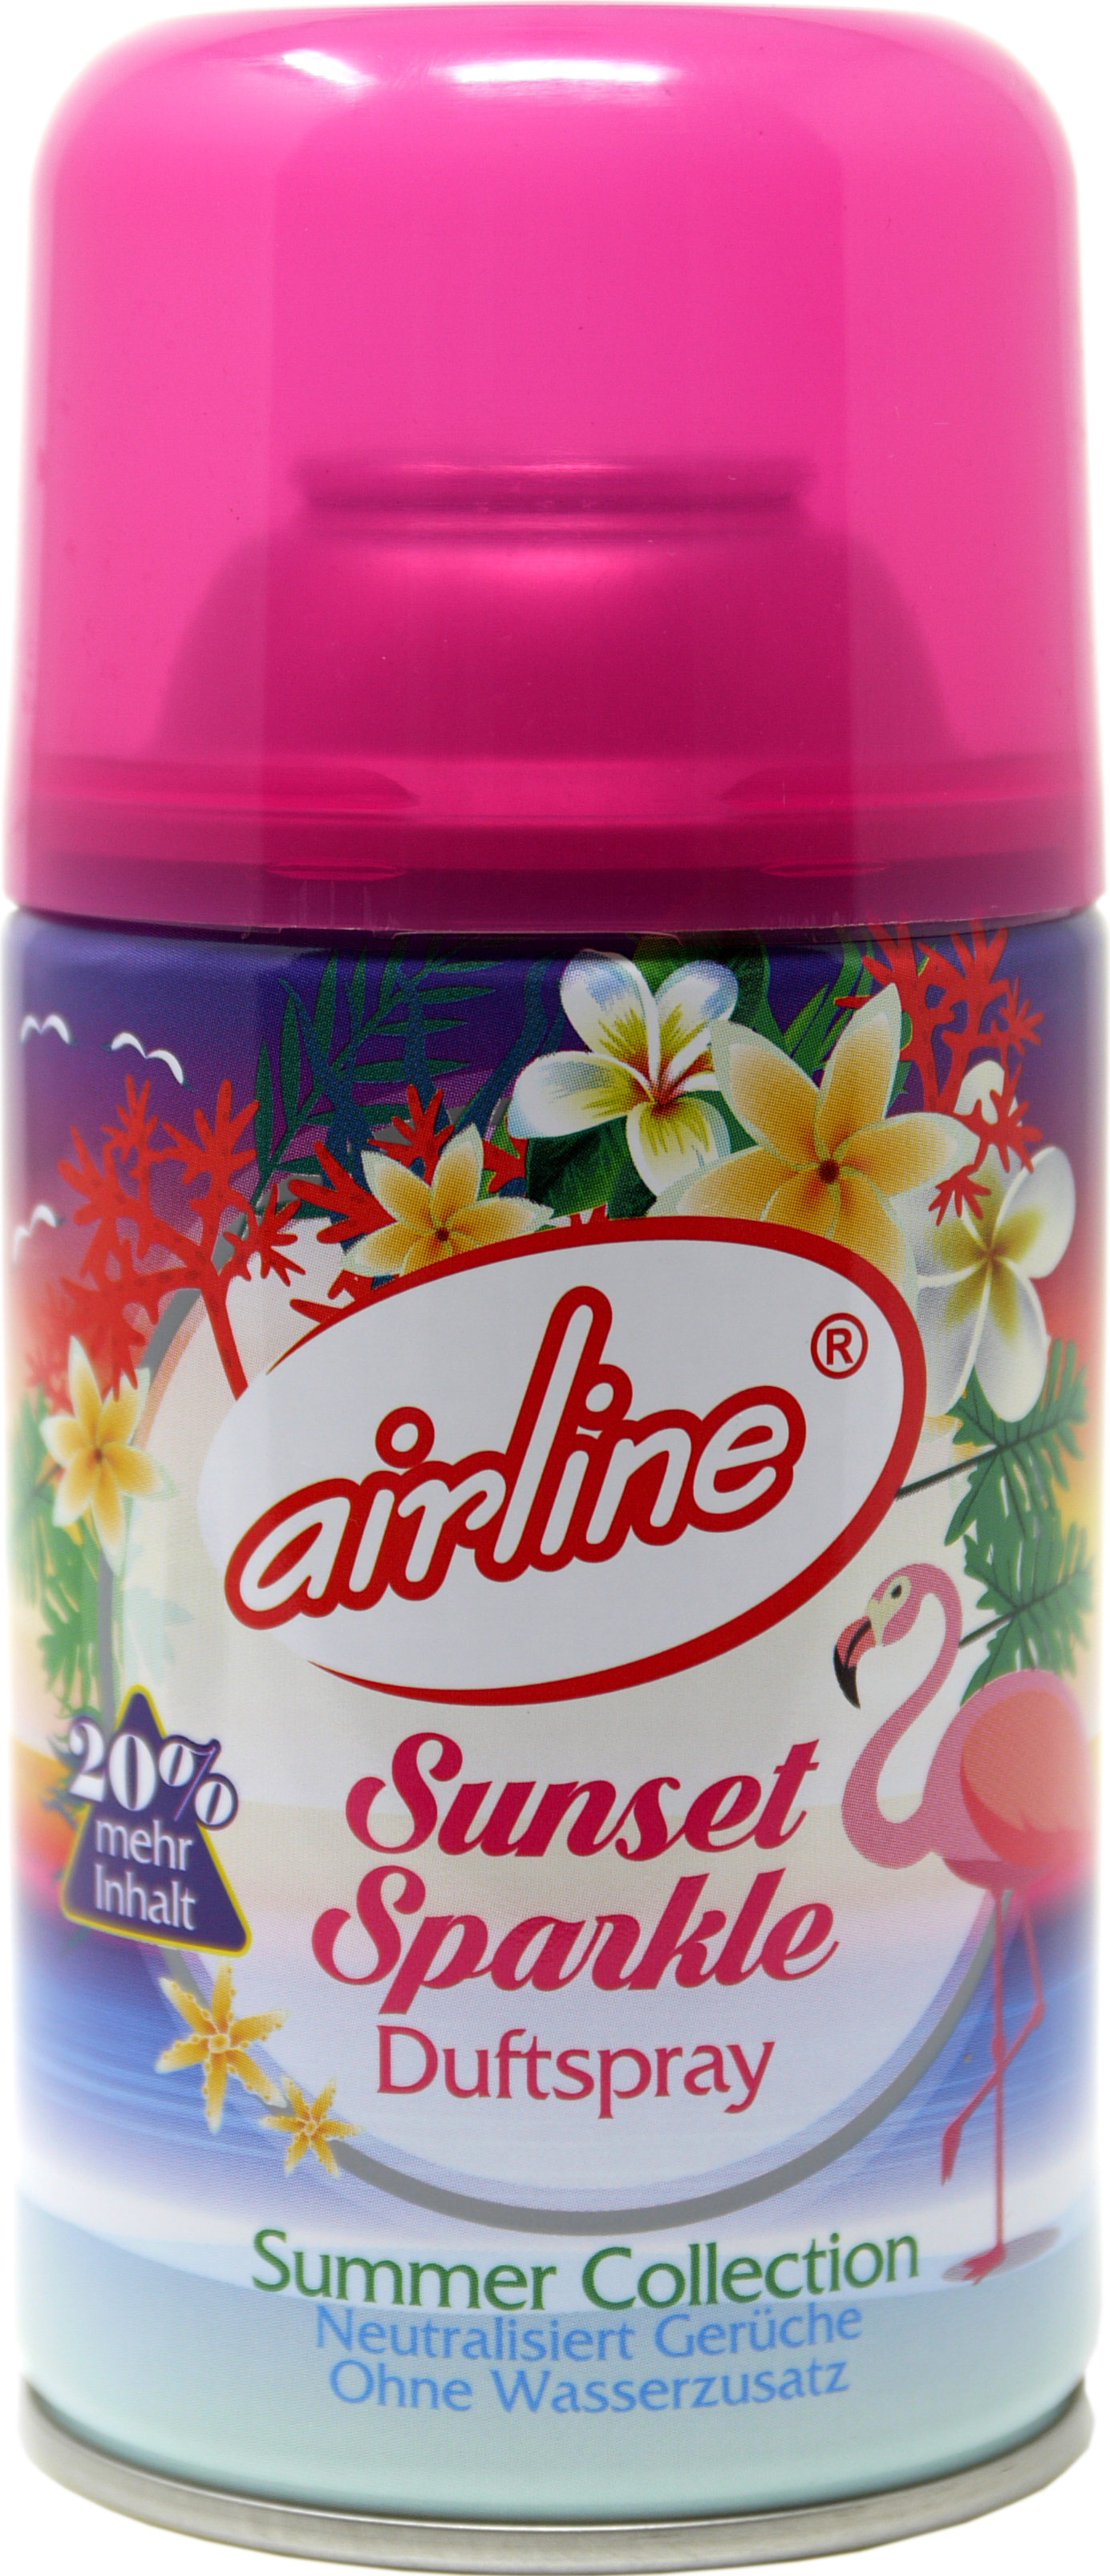 00532 - airline Summer Collection Sunset Sparkle Nachfüllkartusche 300 ml